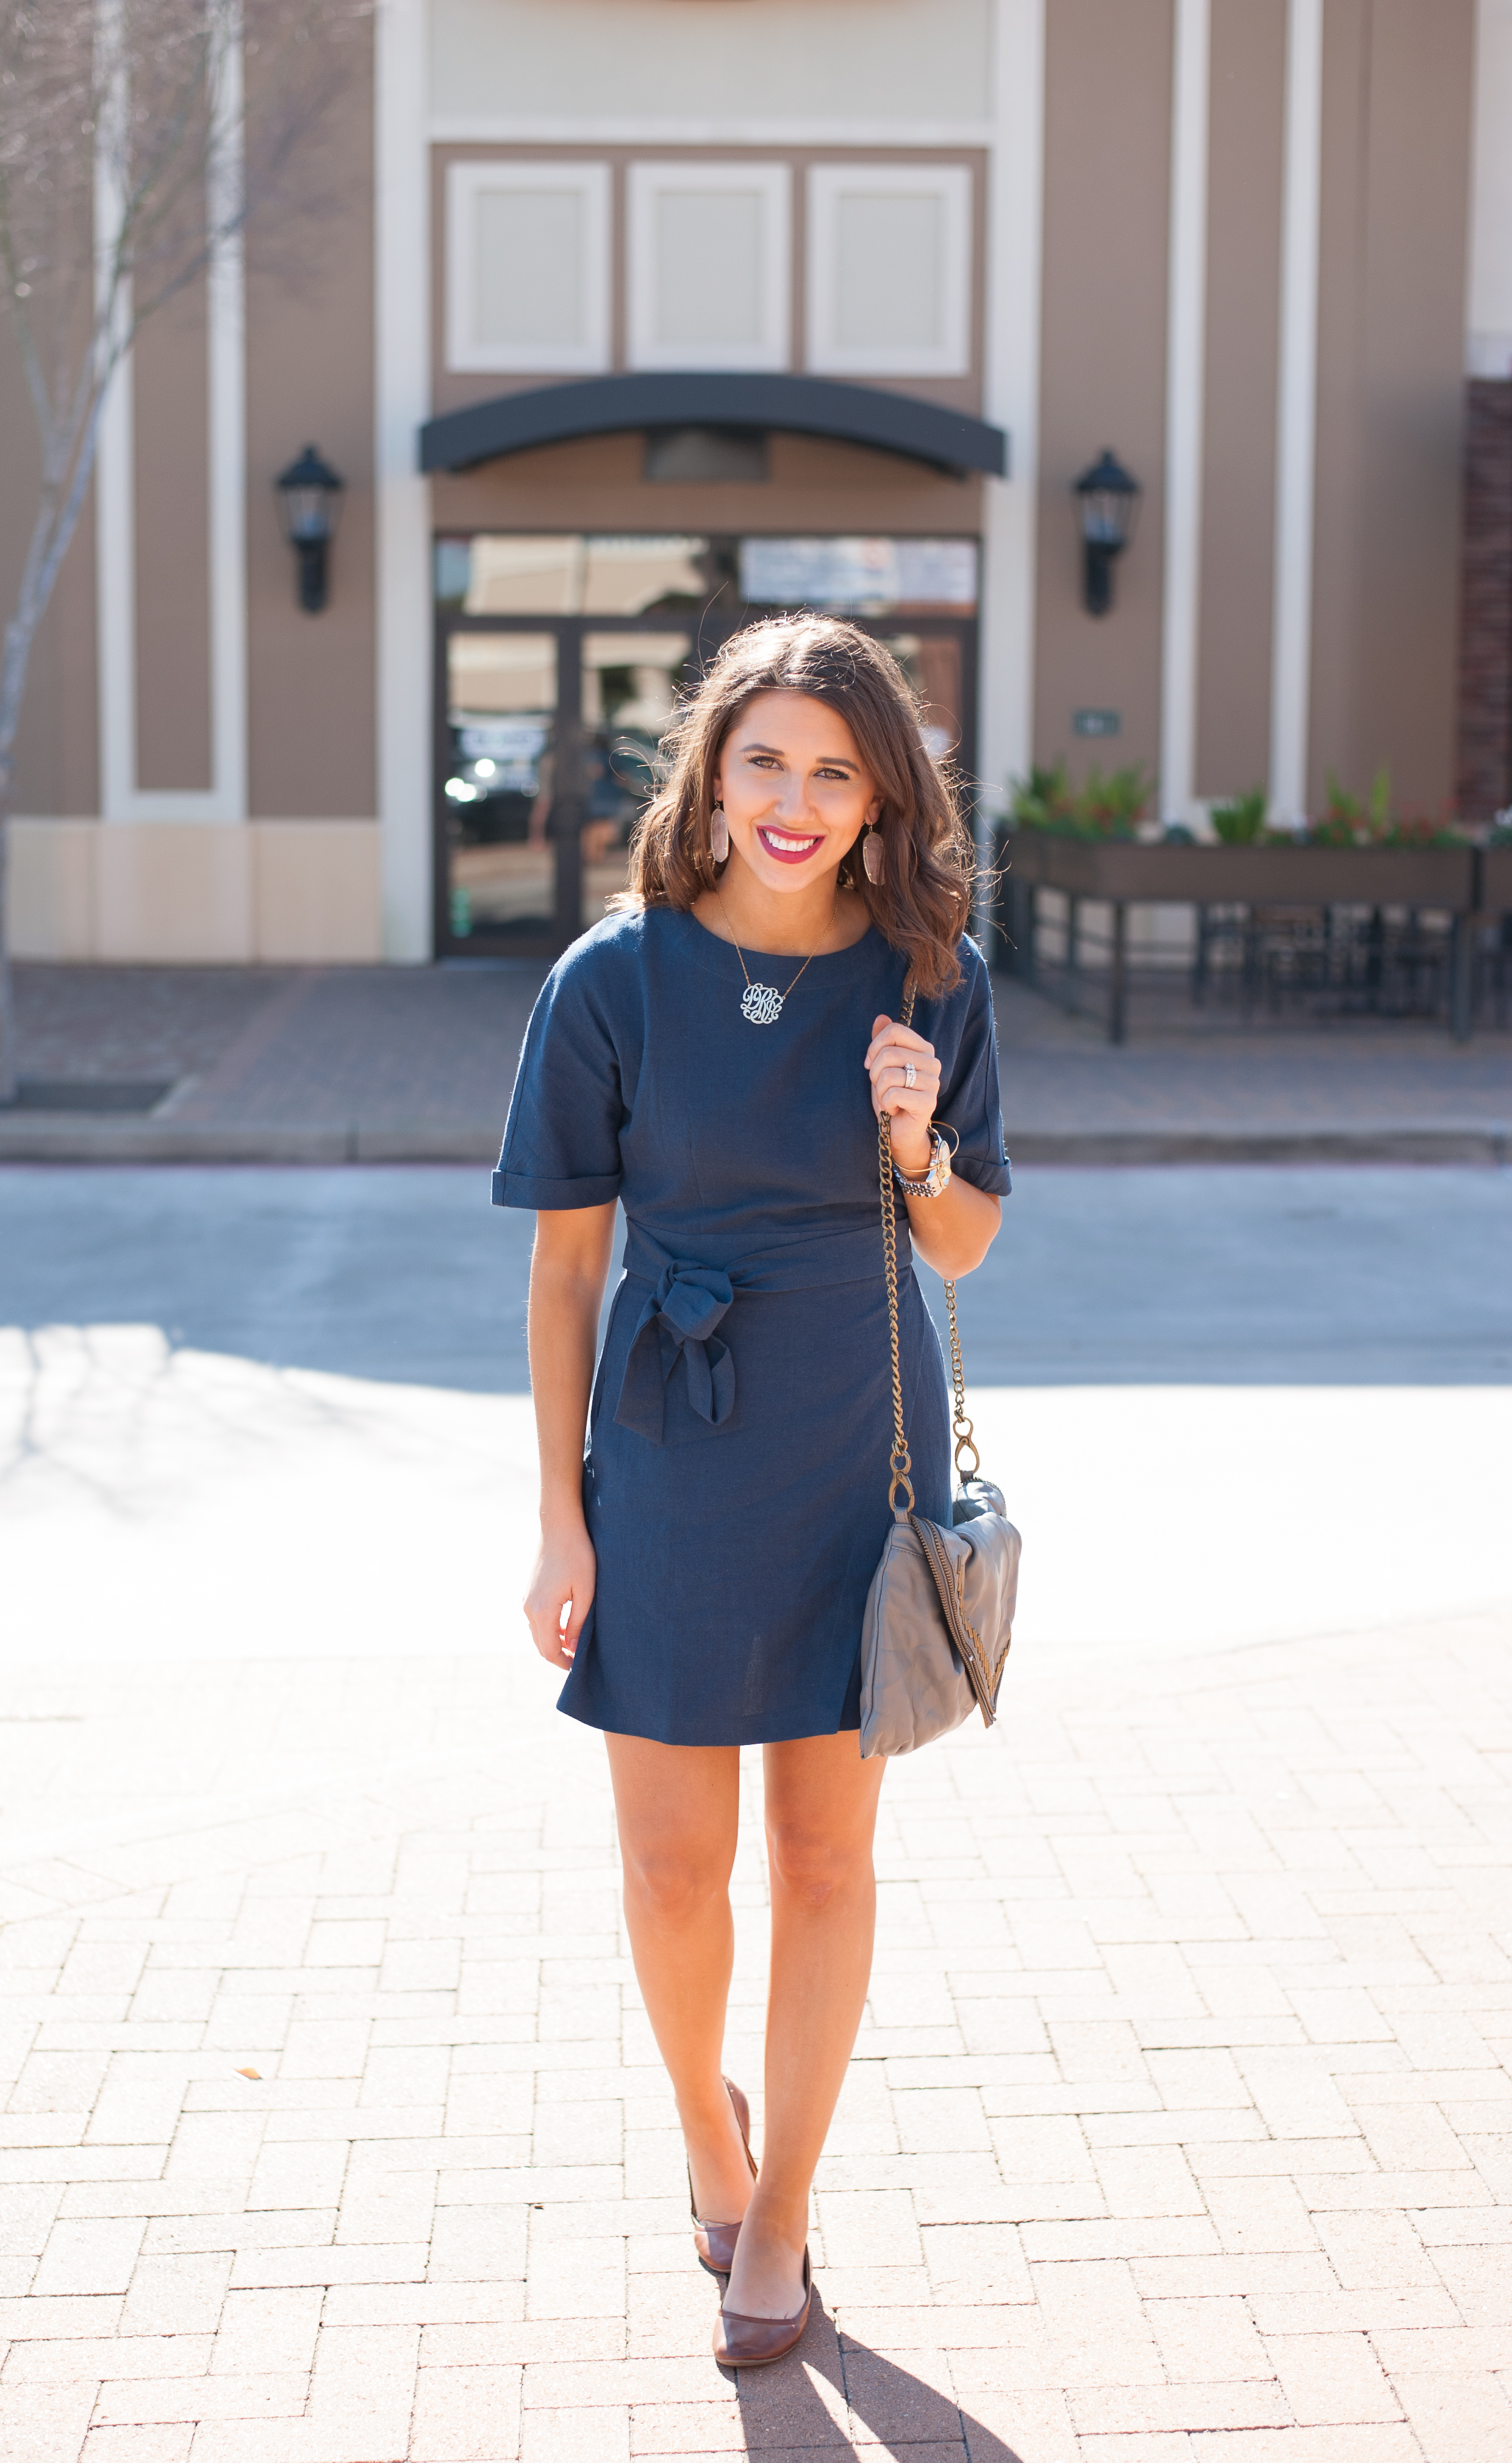 dress_up_buttercup_dede_raad_fashion_blogger_houston (1 of 15)